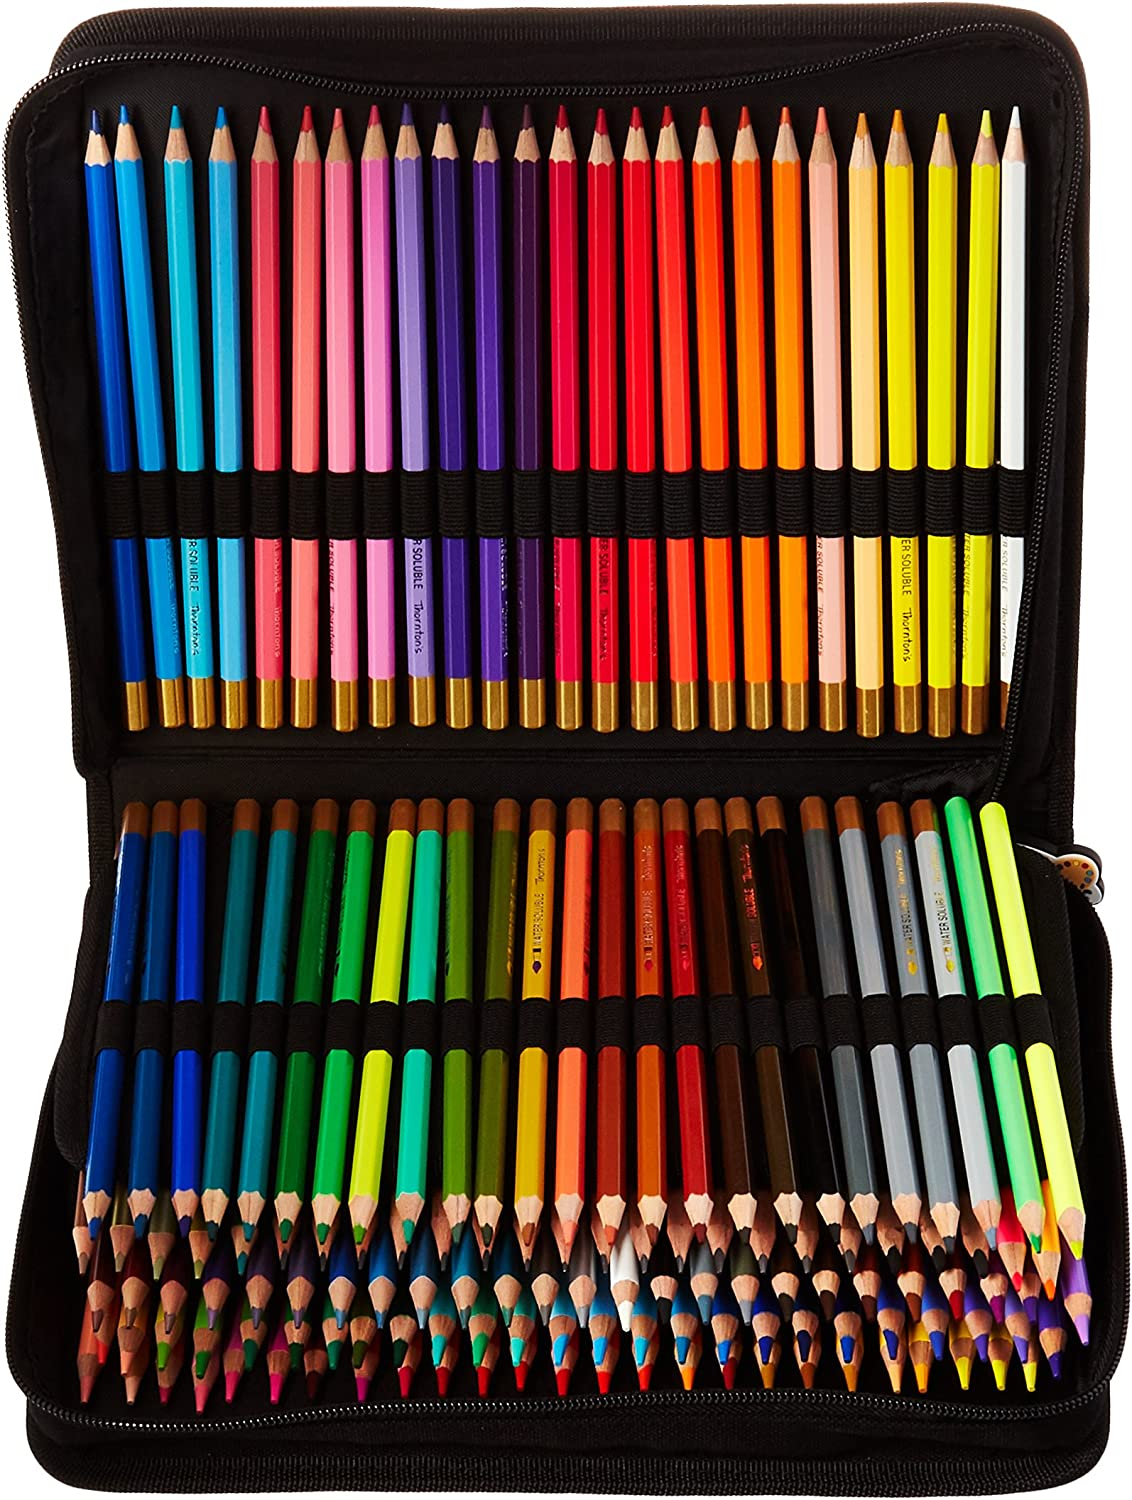 mejor moda Thornton's Art Art Art Supply Premier Premium Artist lápices de Colors  venderse como panqueques